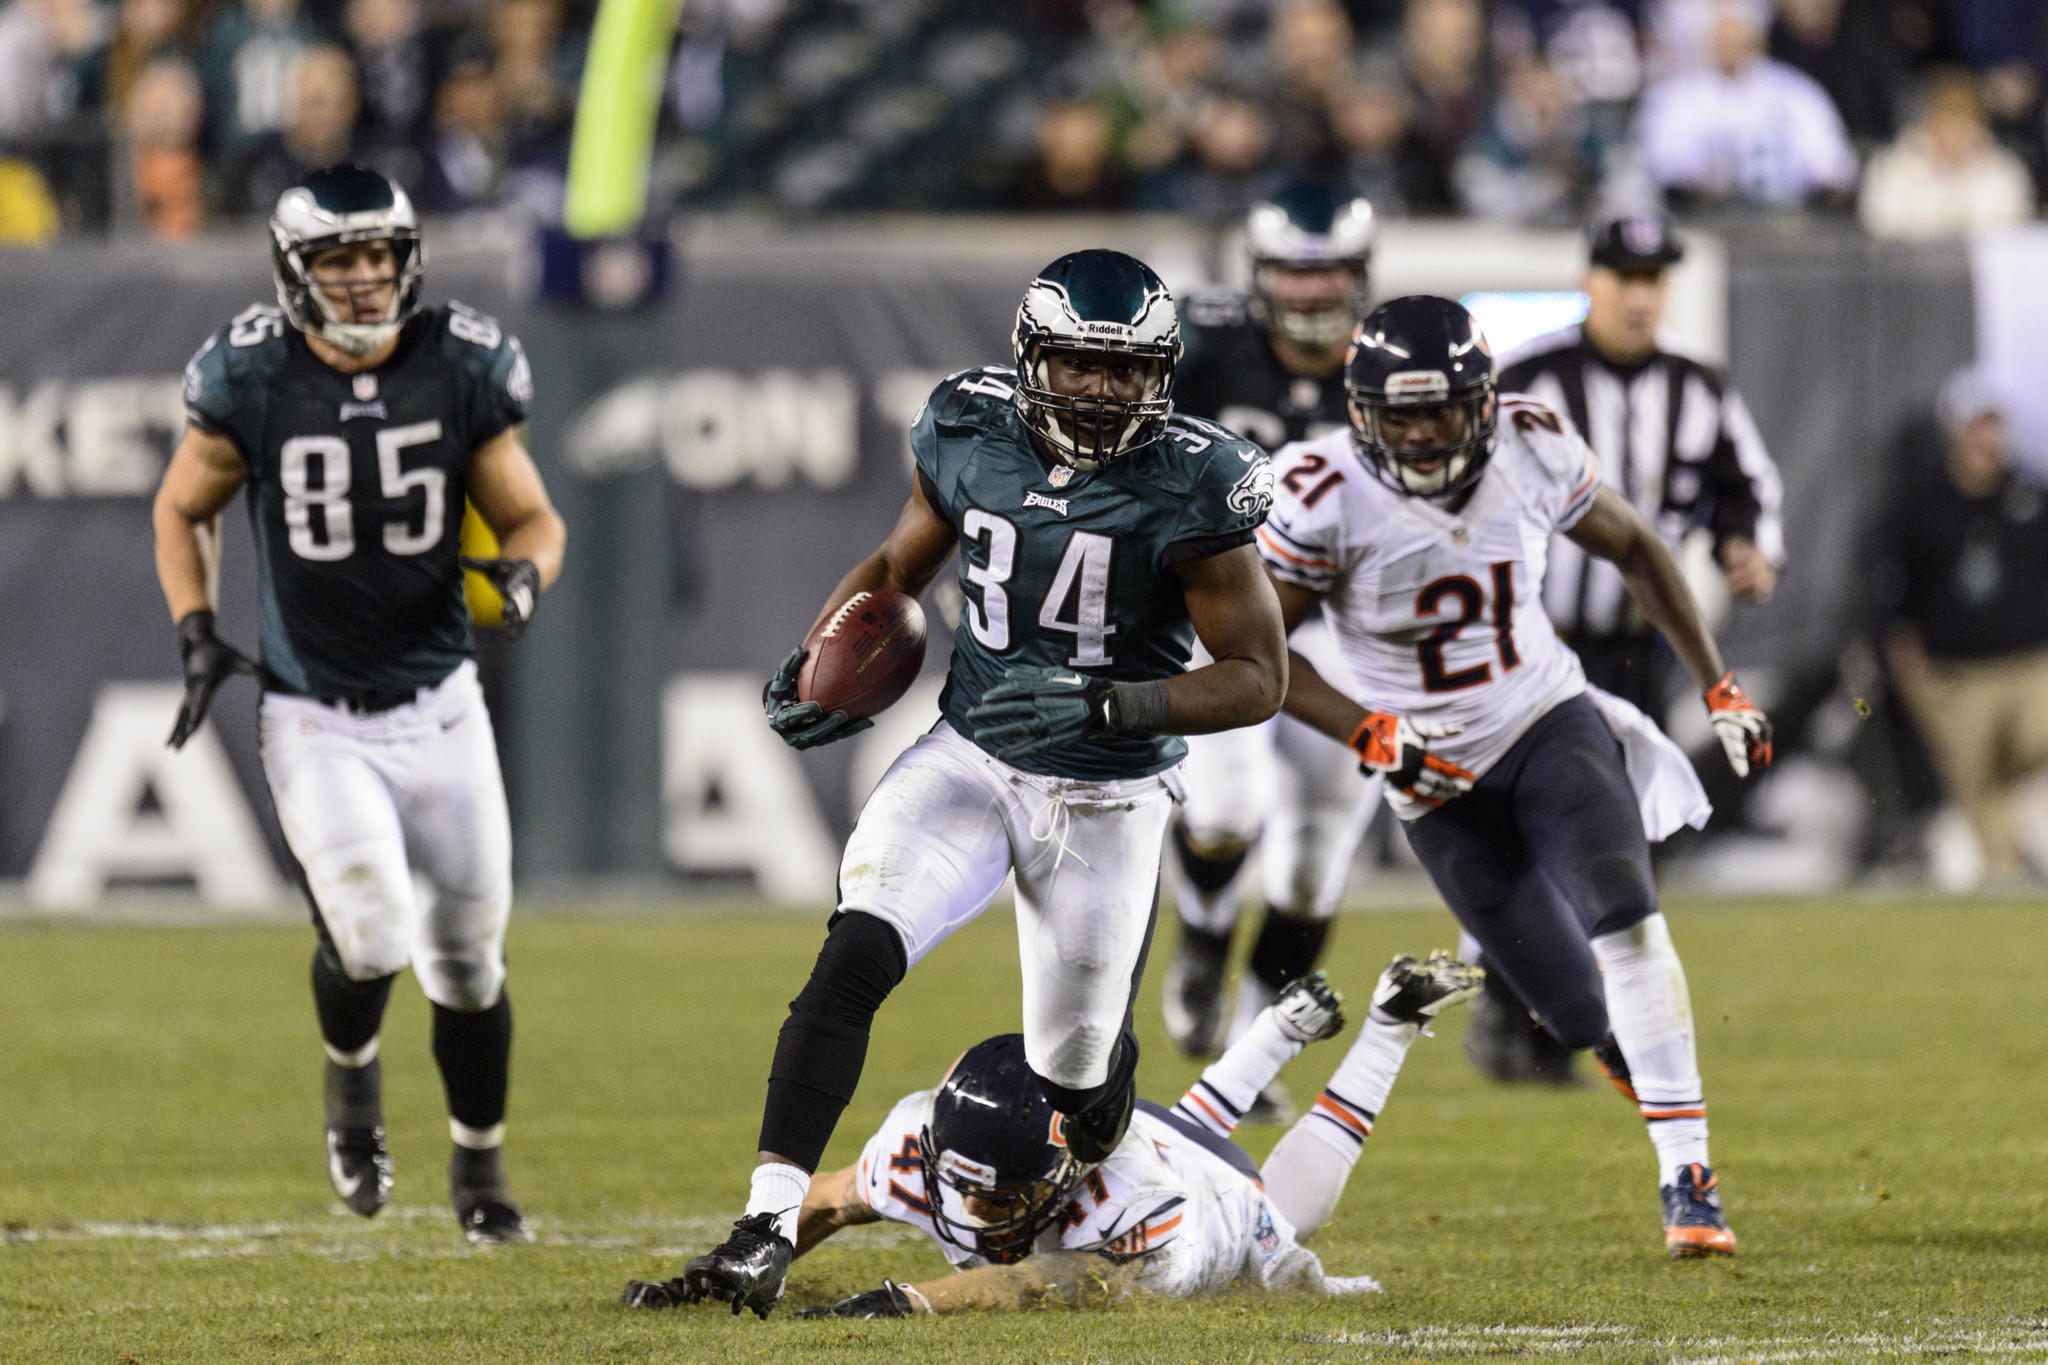 Eagles running back Bryce Brown runs for a touchdown during the fourth quarter Sunday against the Bears.